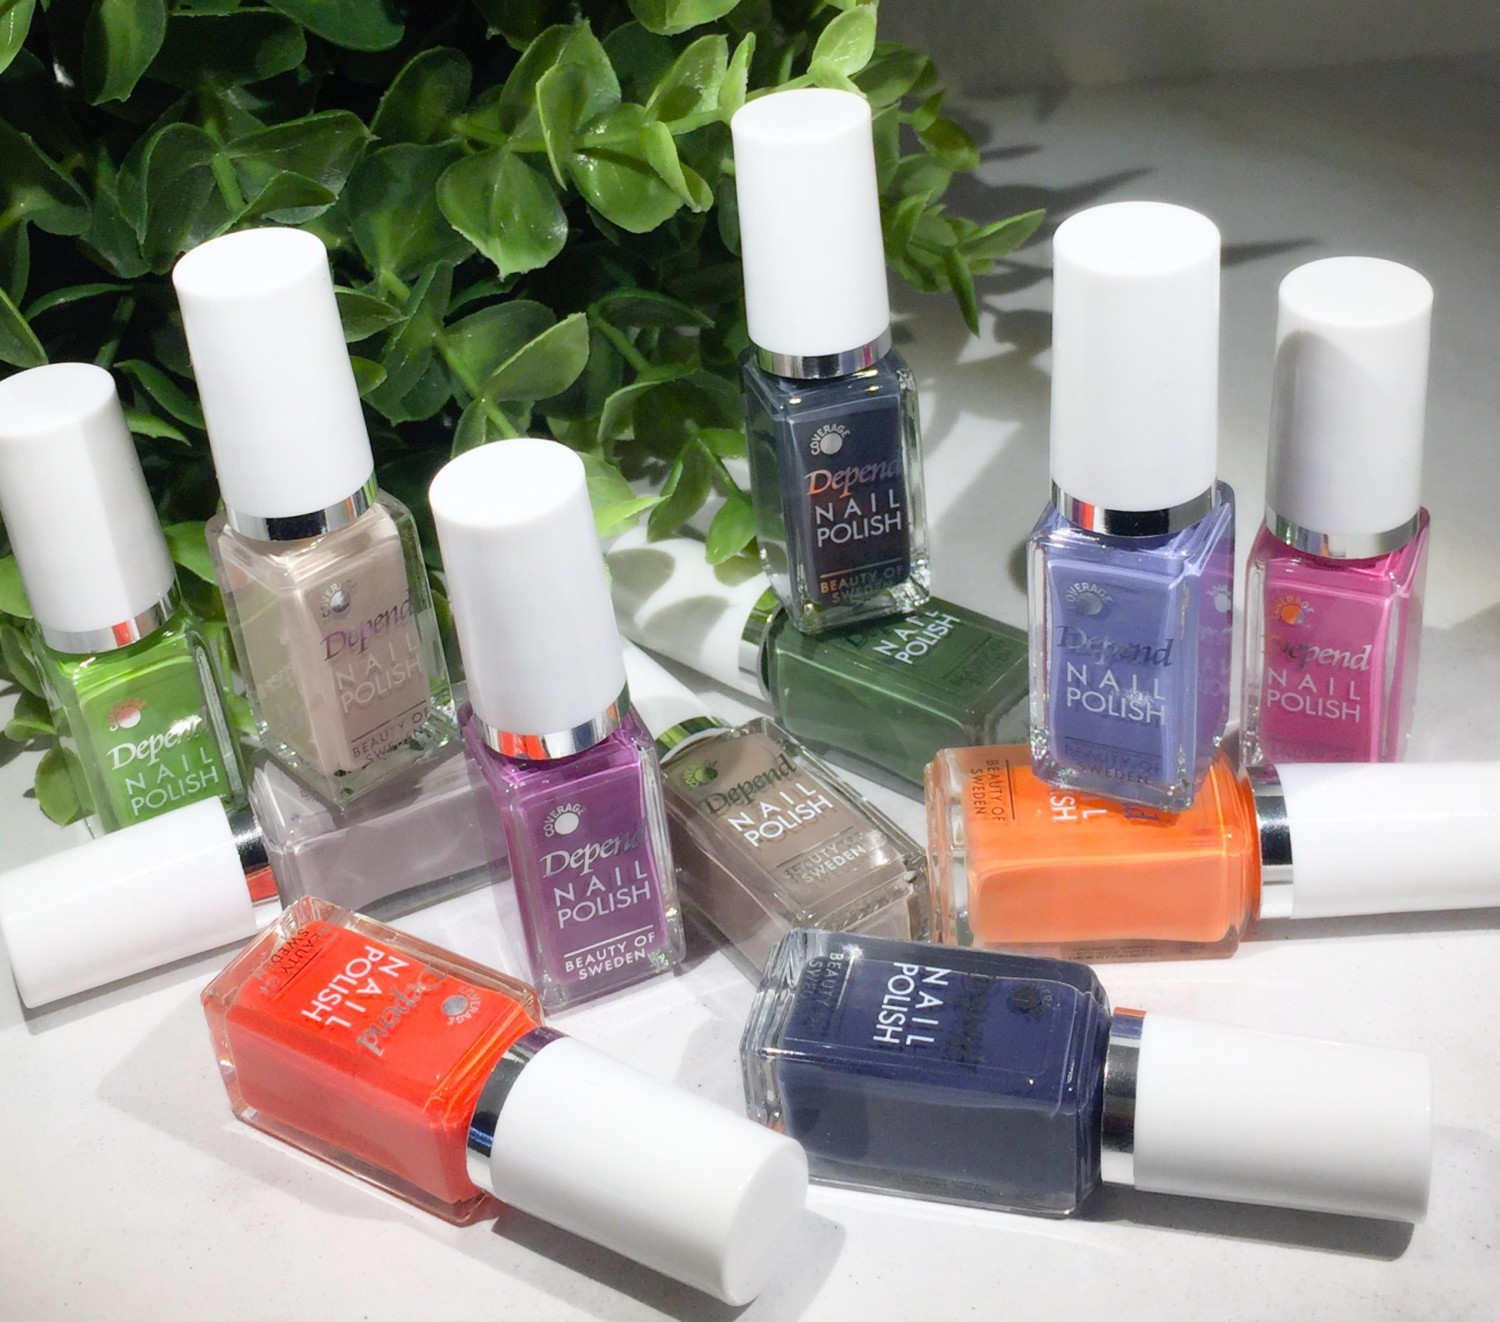 Depend, Depend Cosmetic, Depend Cosmetic Autumn 18, Minilakker, Depends Minilakker, Whoever Whatever, Efterår 2018, Swatches, Swatch, Seatches Minilakker,